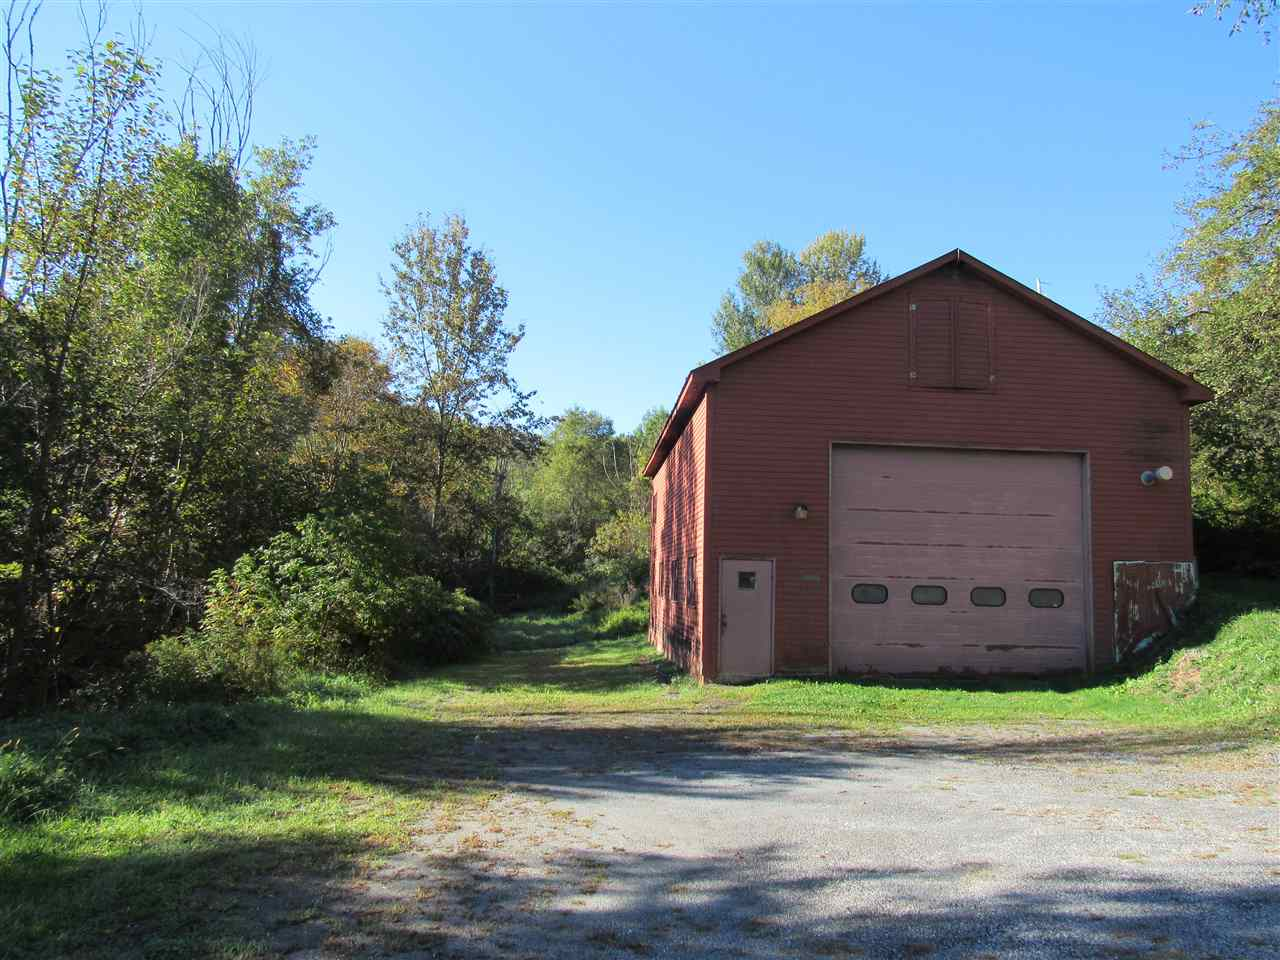 POMFRET VT Commercial Property for sale $$110,000 | $62 per sq.ft.